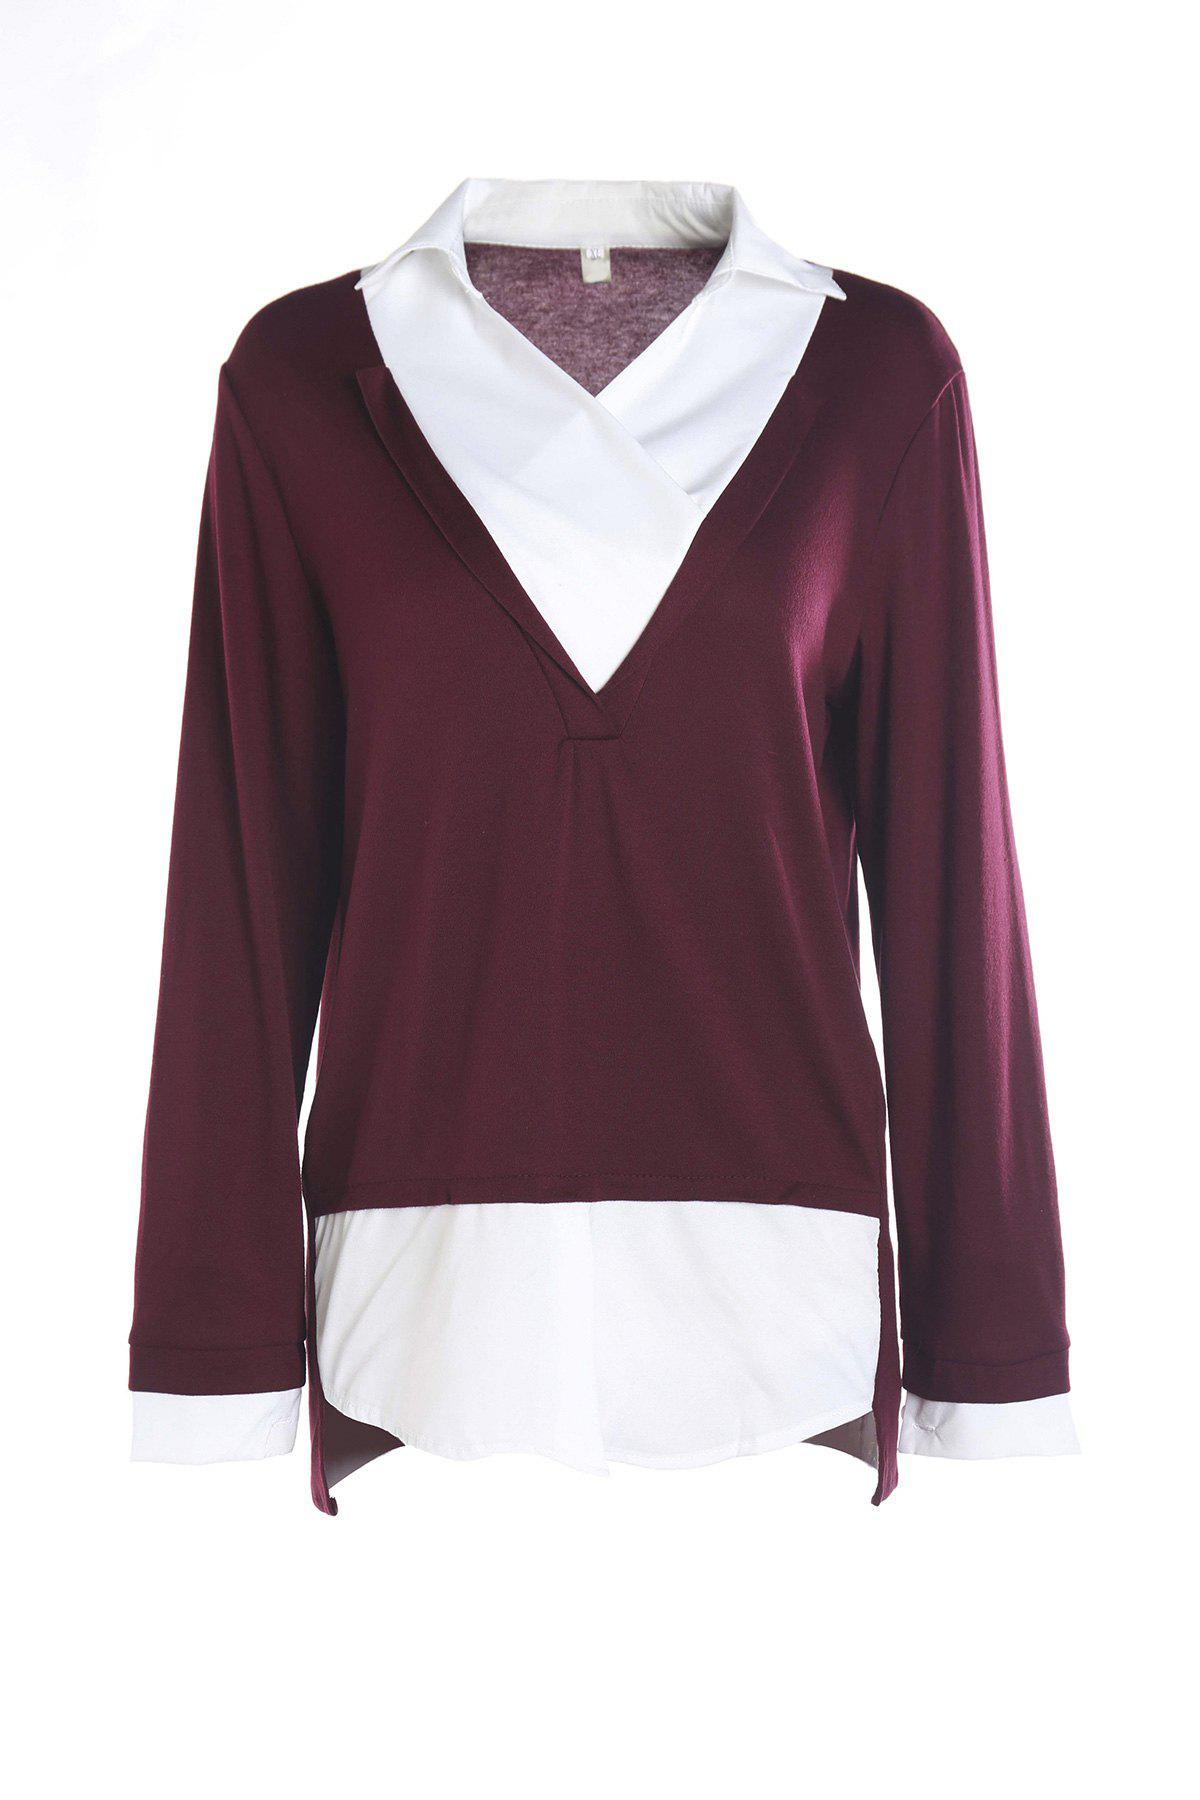 Stylish Shirt Collar Long Sleeve Faux Twinset Hit Color Women's Blouse - WINE RED XL